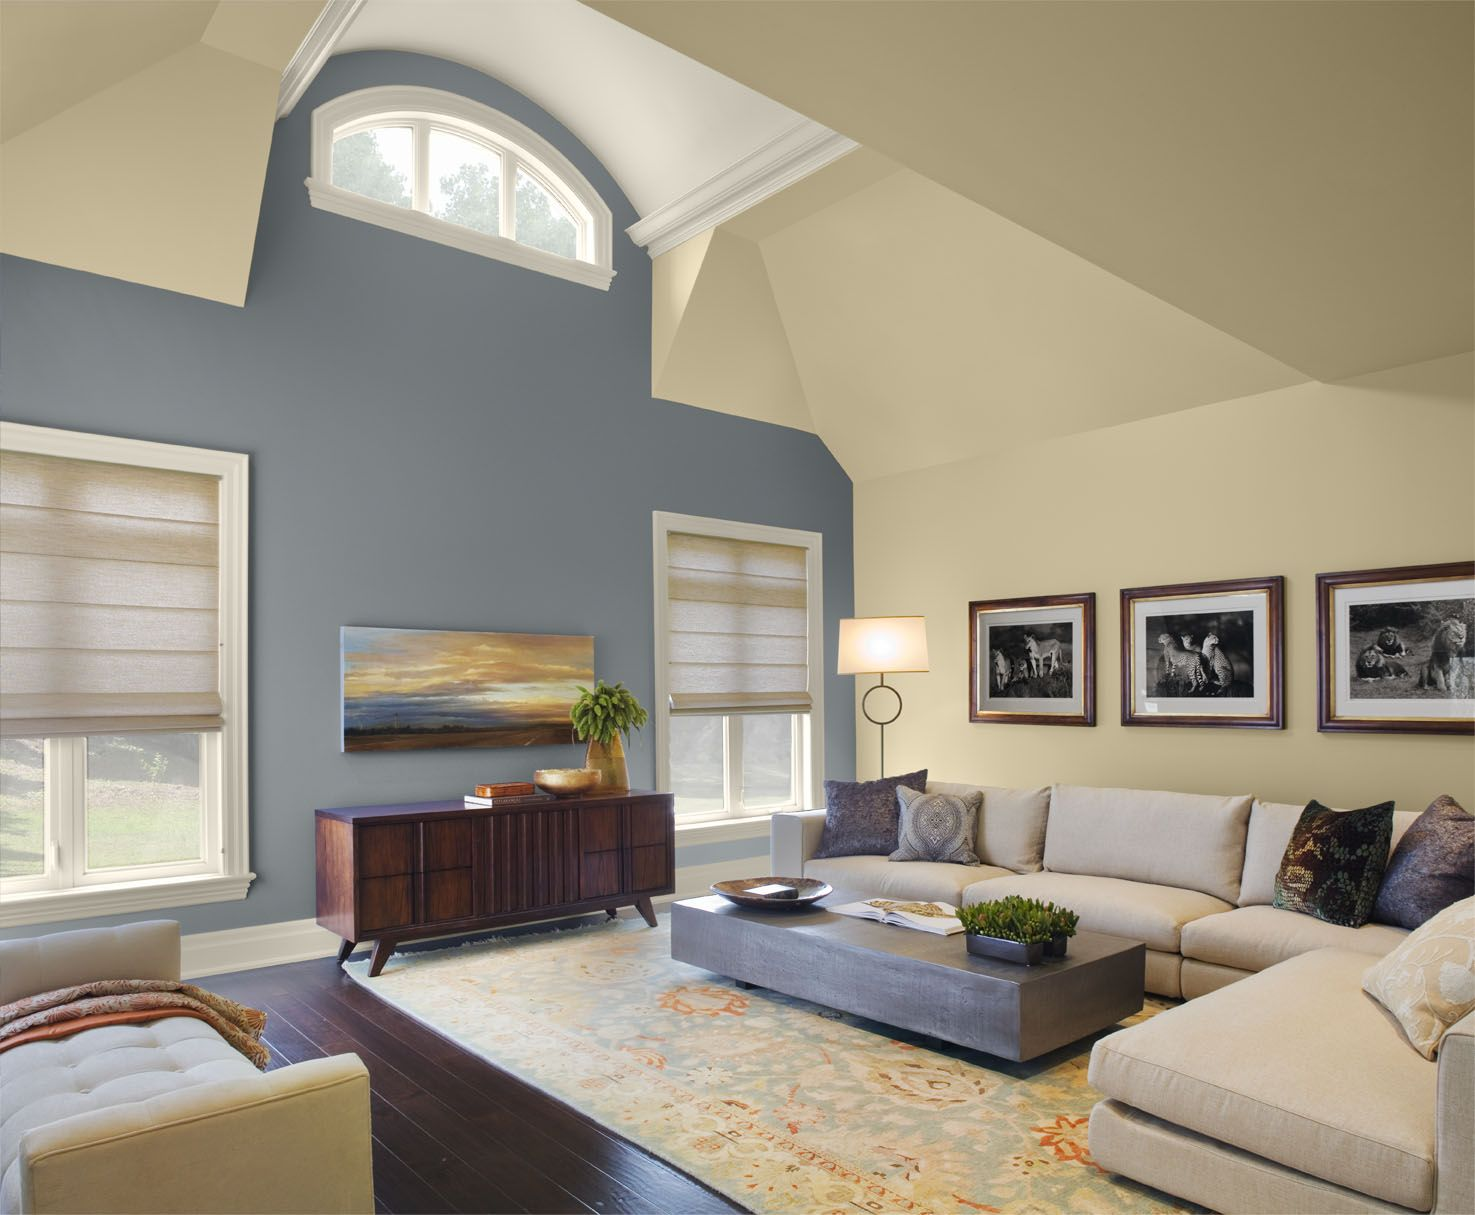 A living room 1 nopillow v6 arch ceiling detail navy walls and ceilings Paint of wall